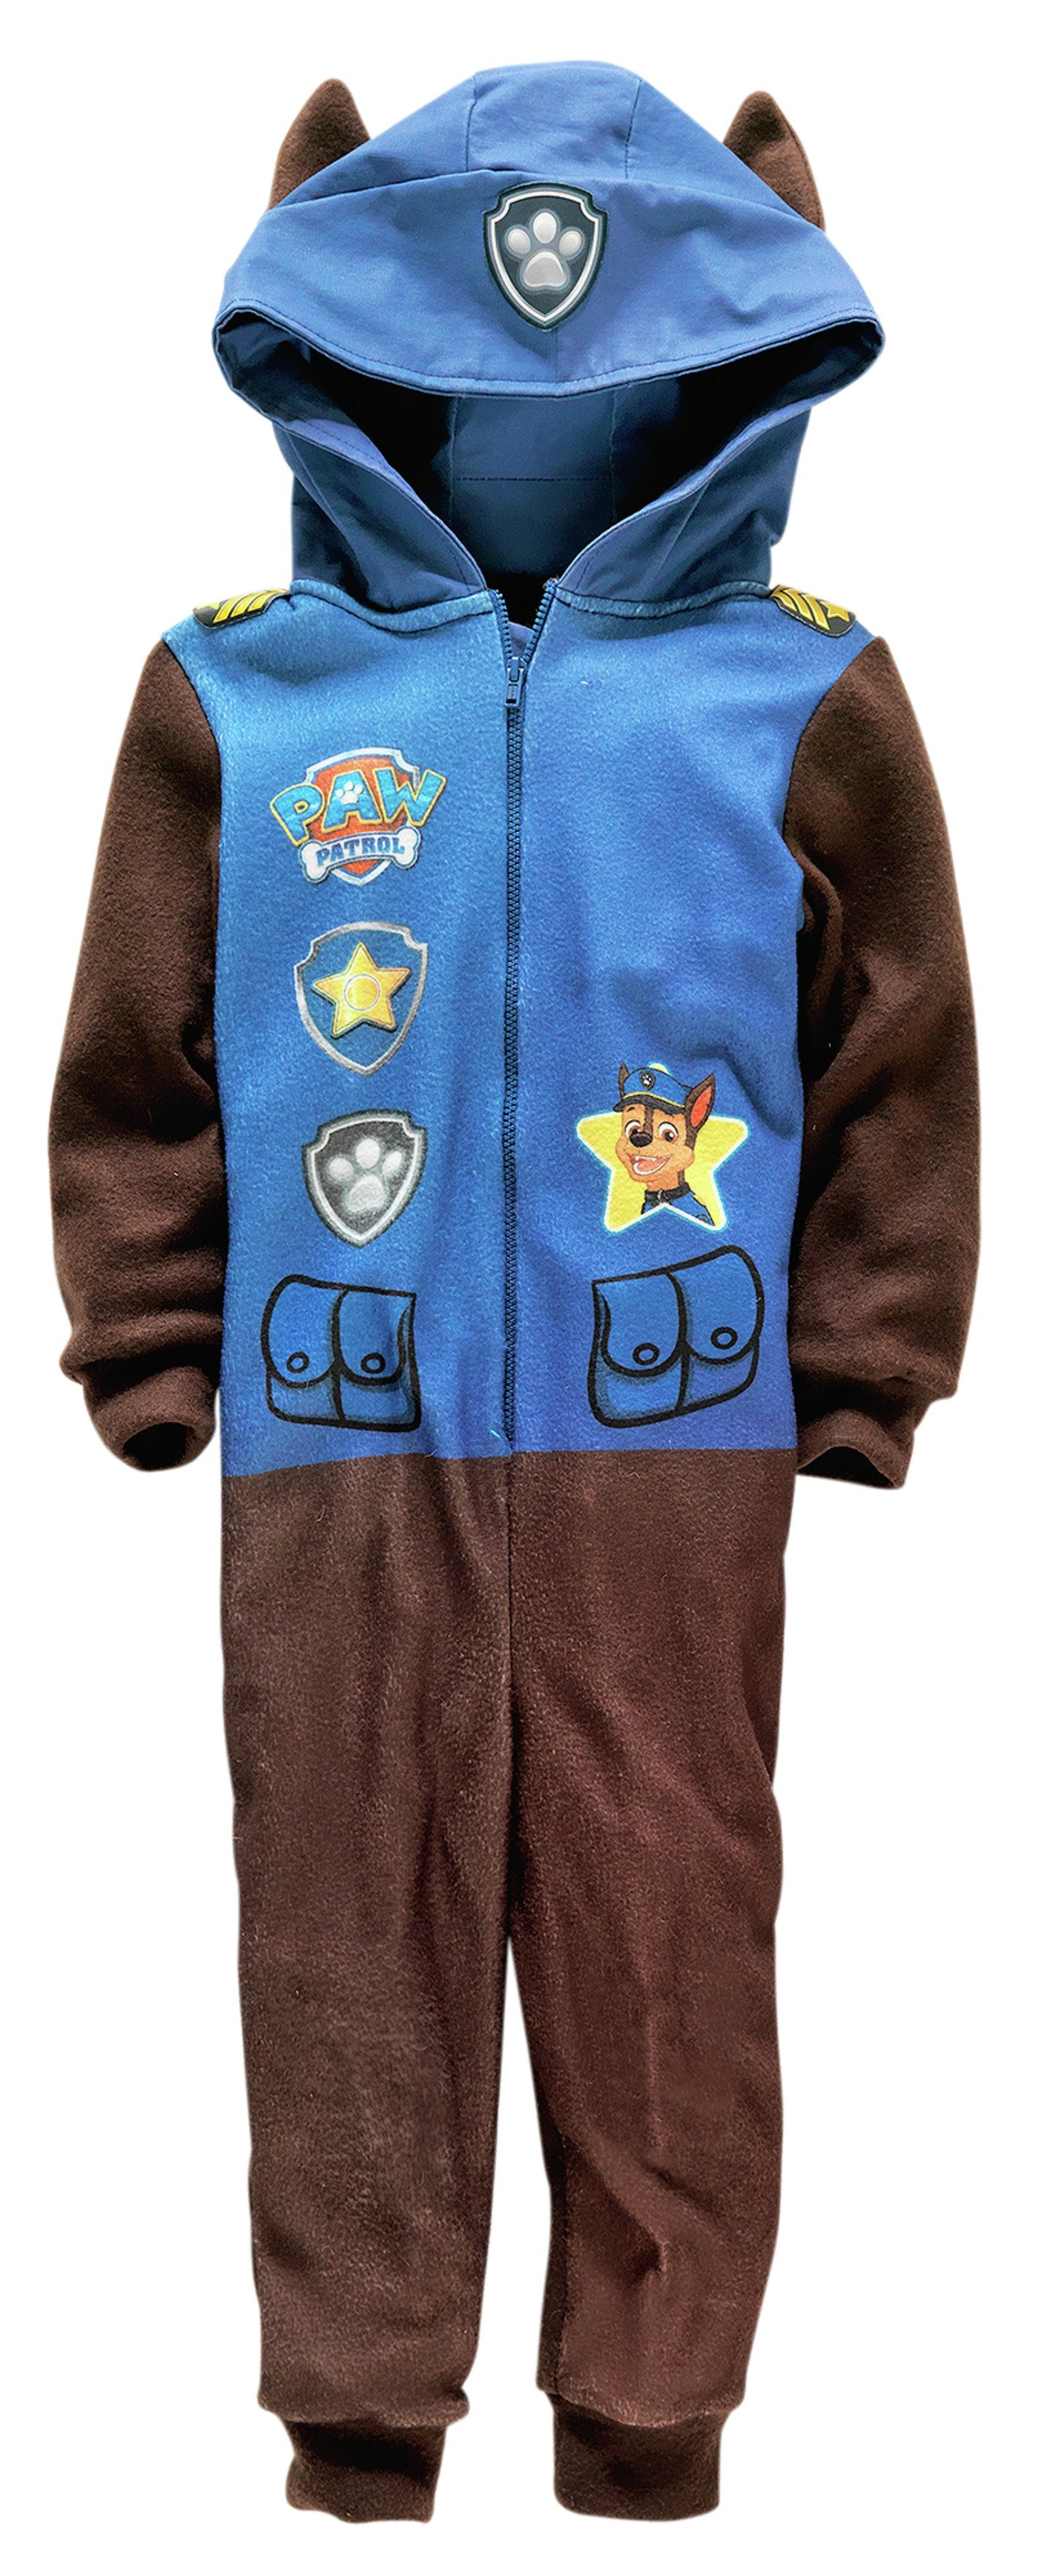 'Paw Patrol Novelty Onesie - 5-6 Years